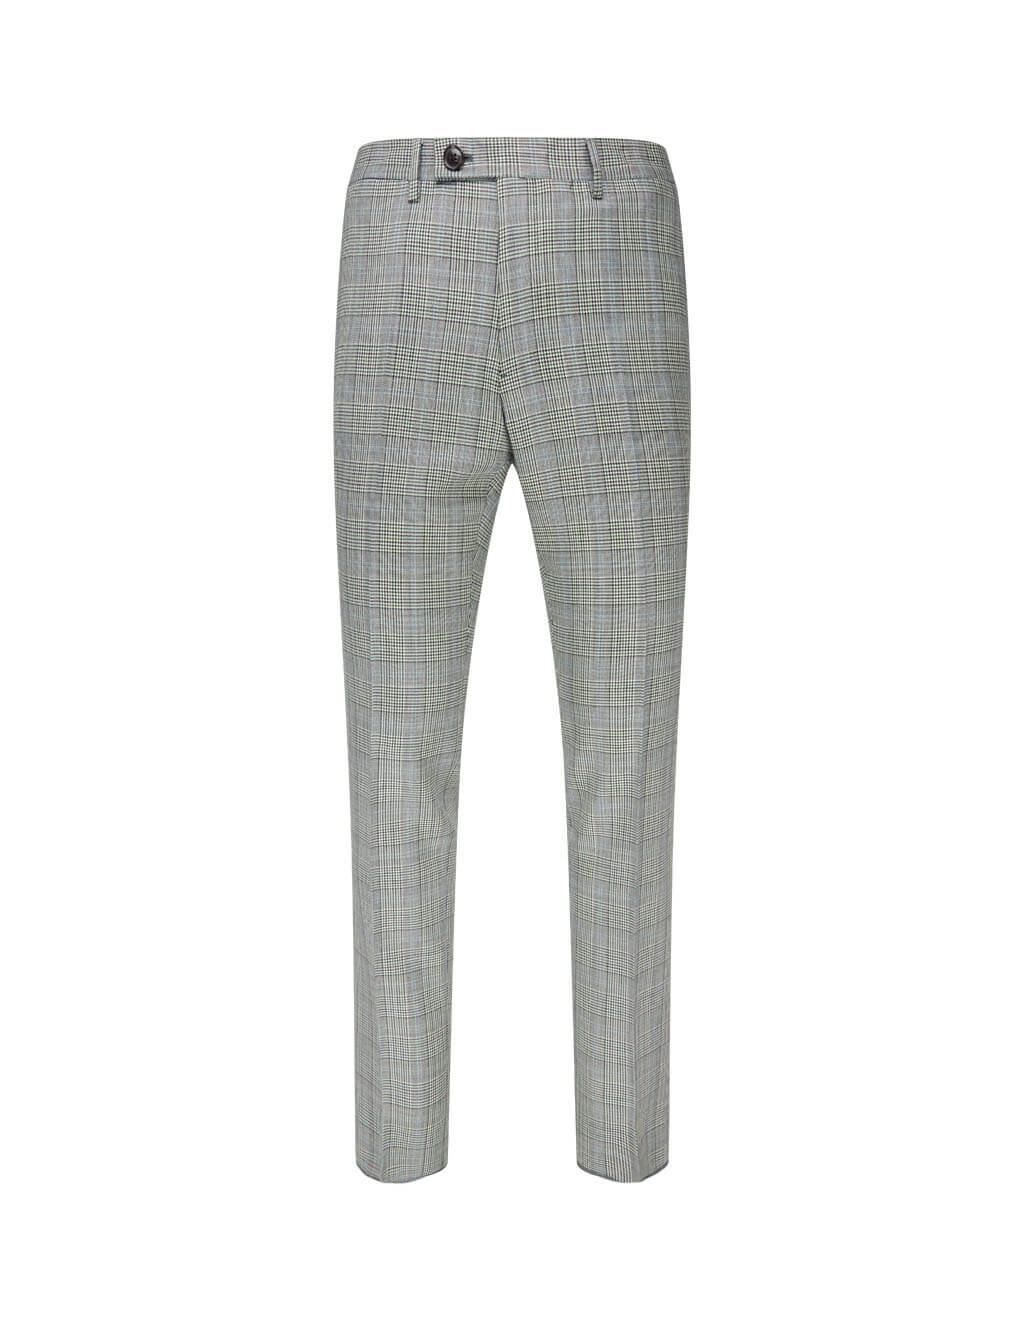 Men's Vivienne Westwood Checked Formal Trousers in Grey/Black/White. 2102000811569LRA201